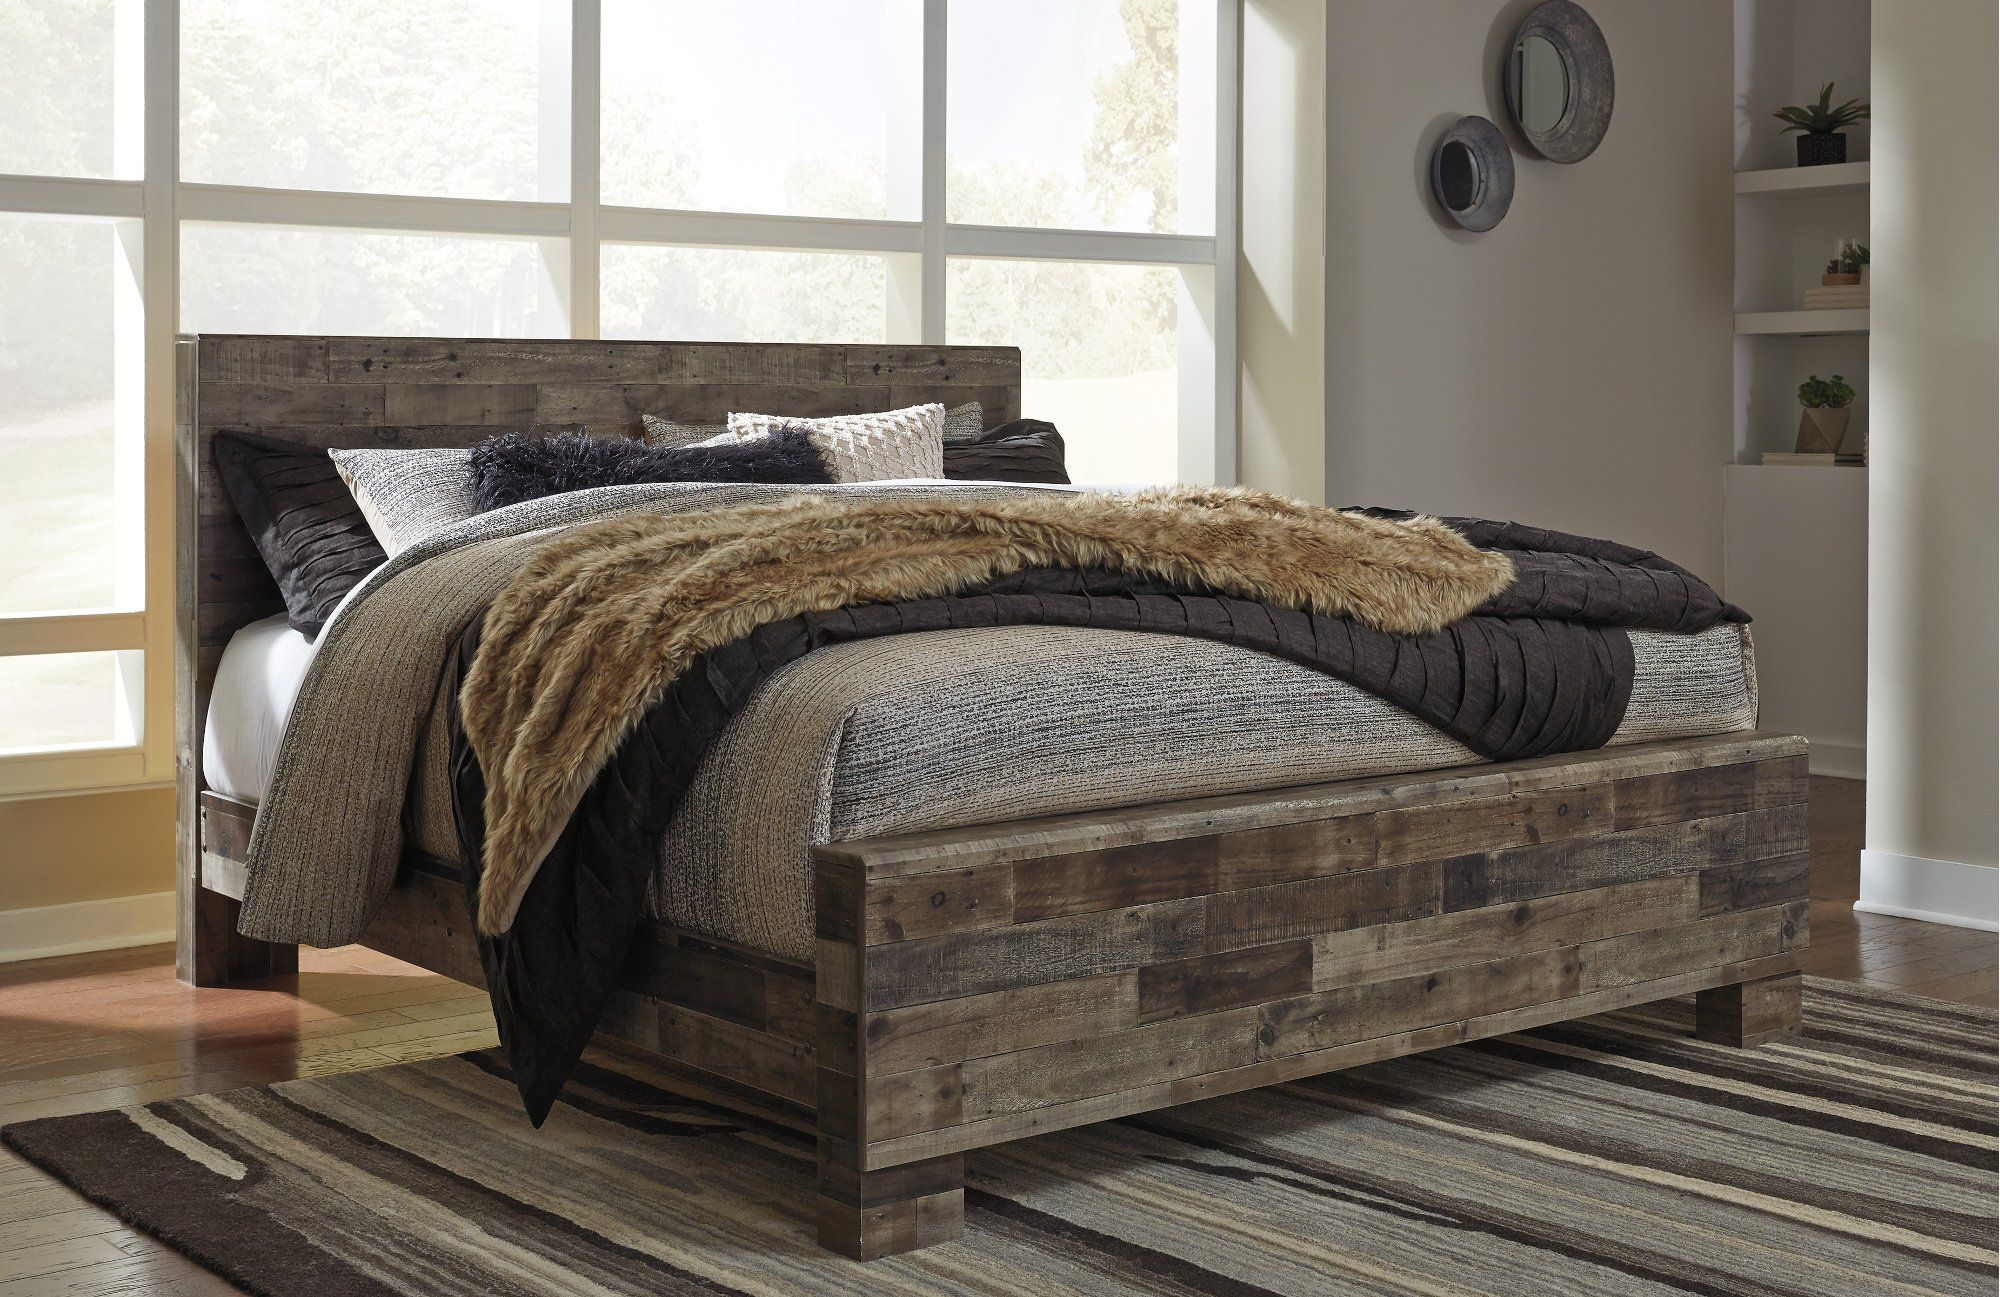 Modern Farmhouse Rustic King Size Bed Broadmore Rustic Queen